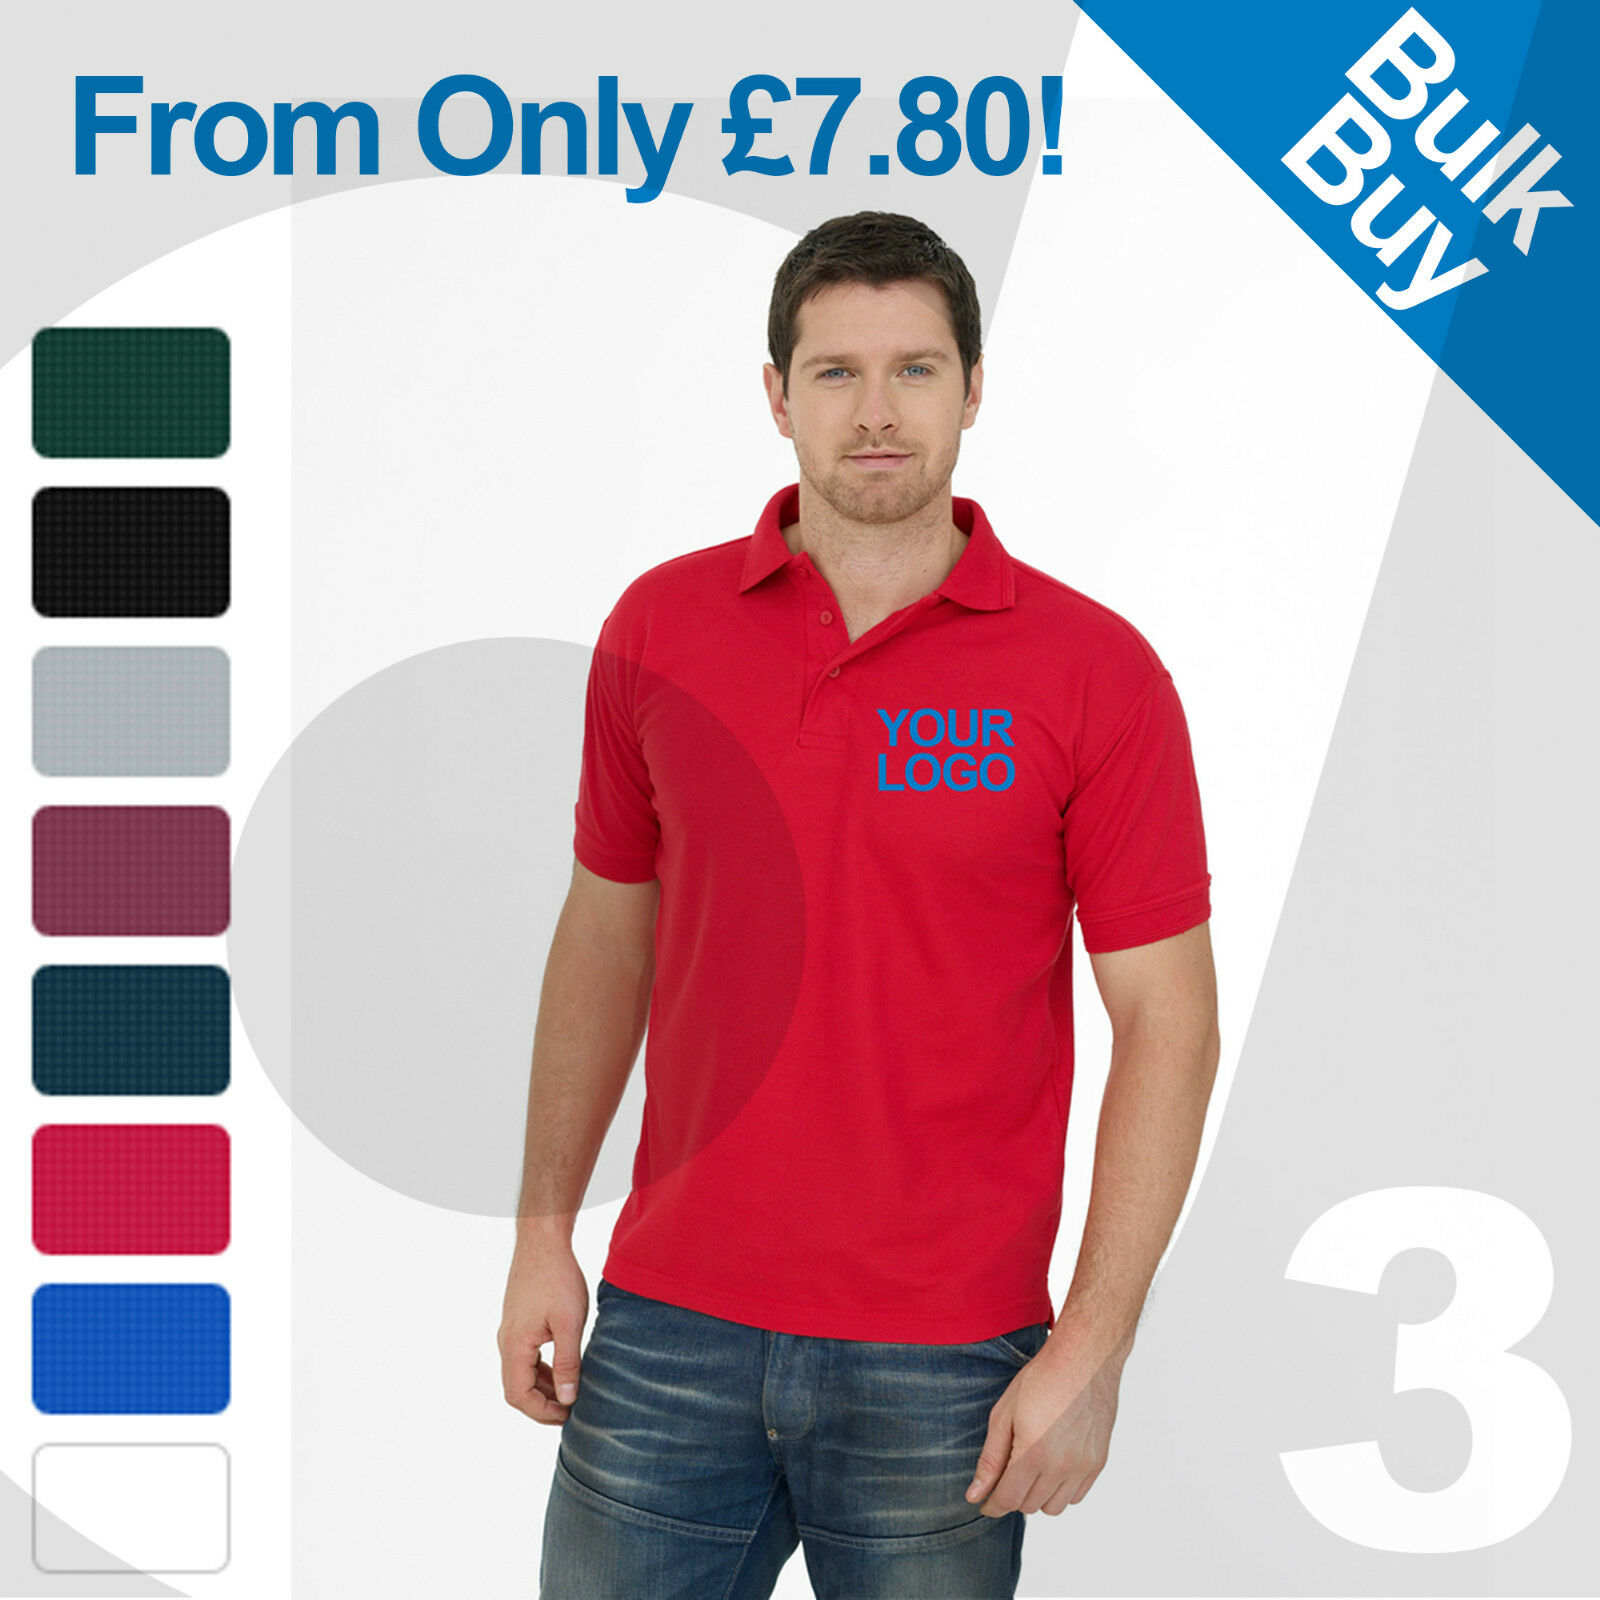 Personalised Embroiderot   Printed Polo Shirts Customised Workwear Text Logo Lot